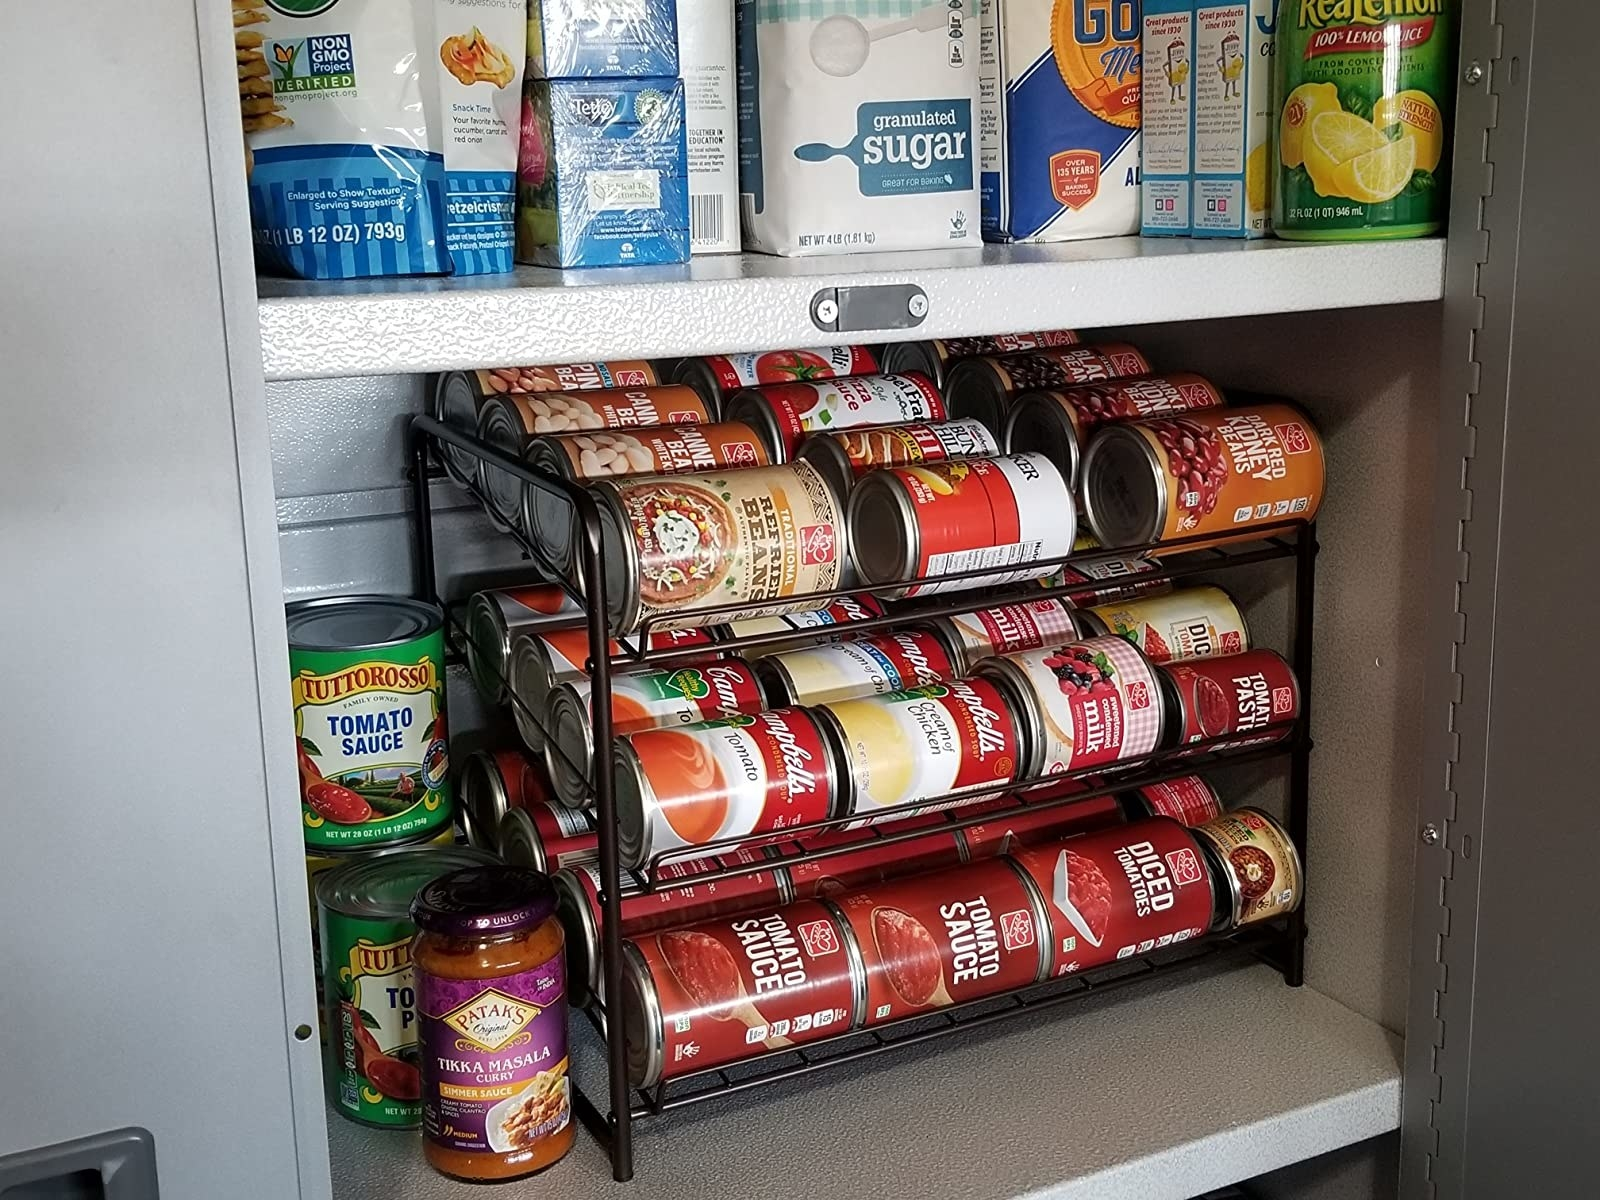 Review image showing the can organizer in their pantry filled with cans